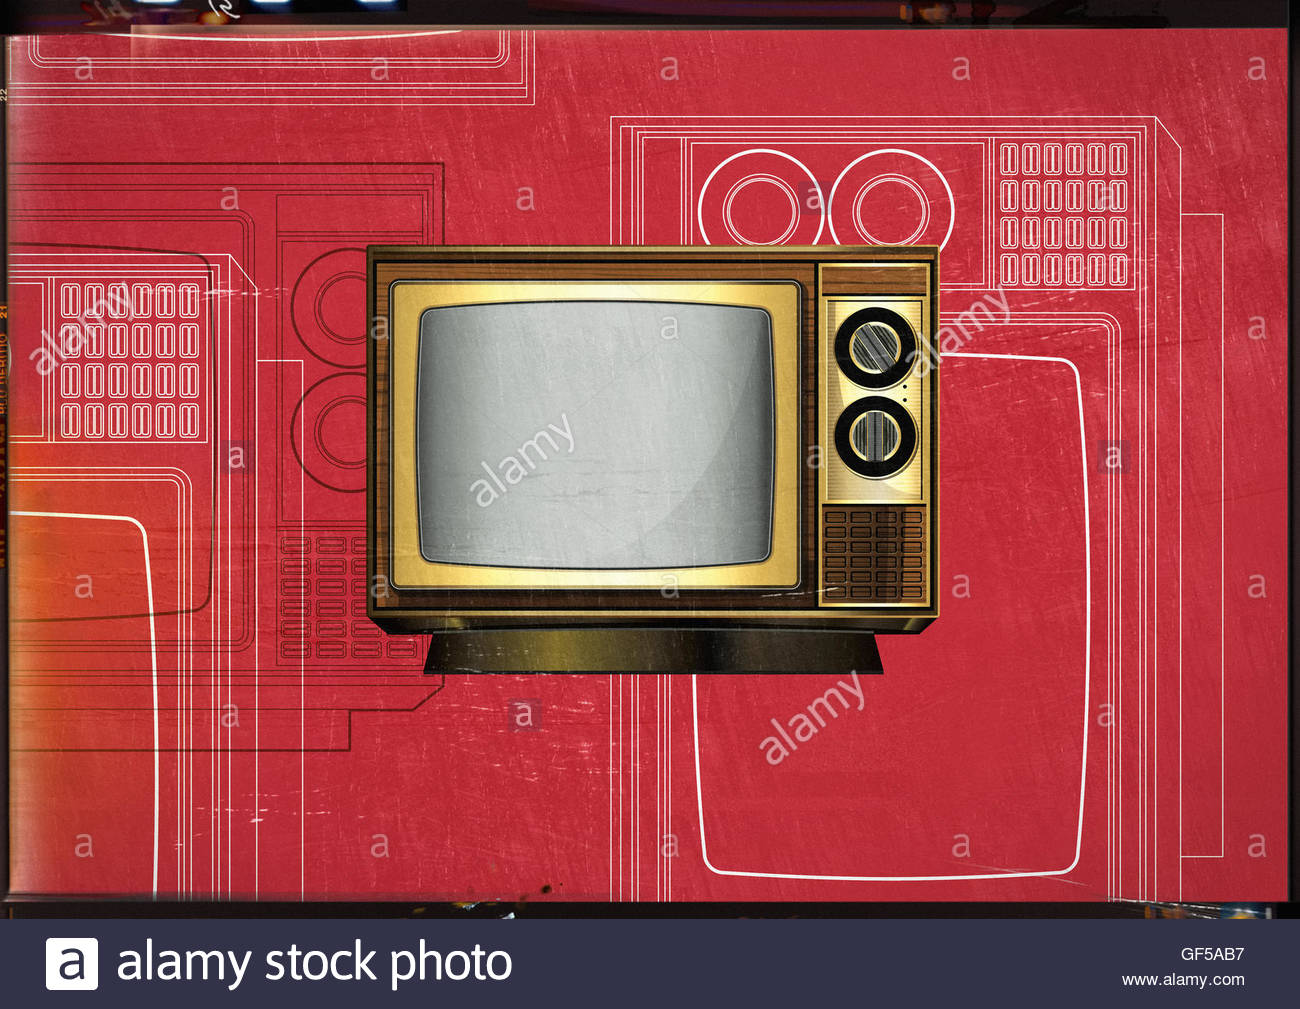 Retro TV vintage mid century style illustration - Stock Image